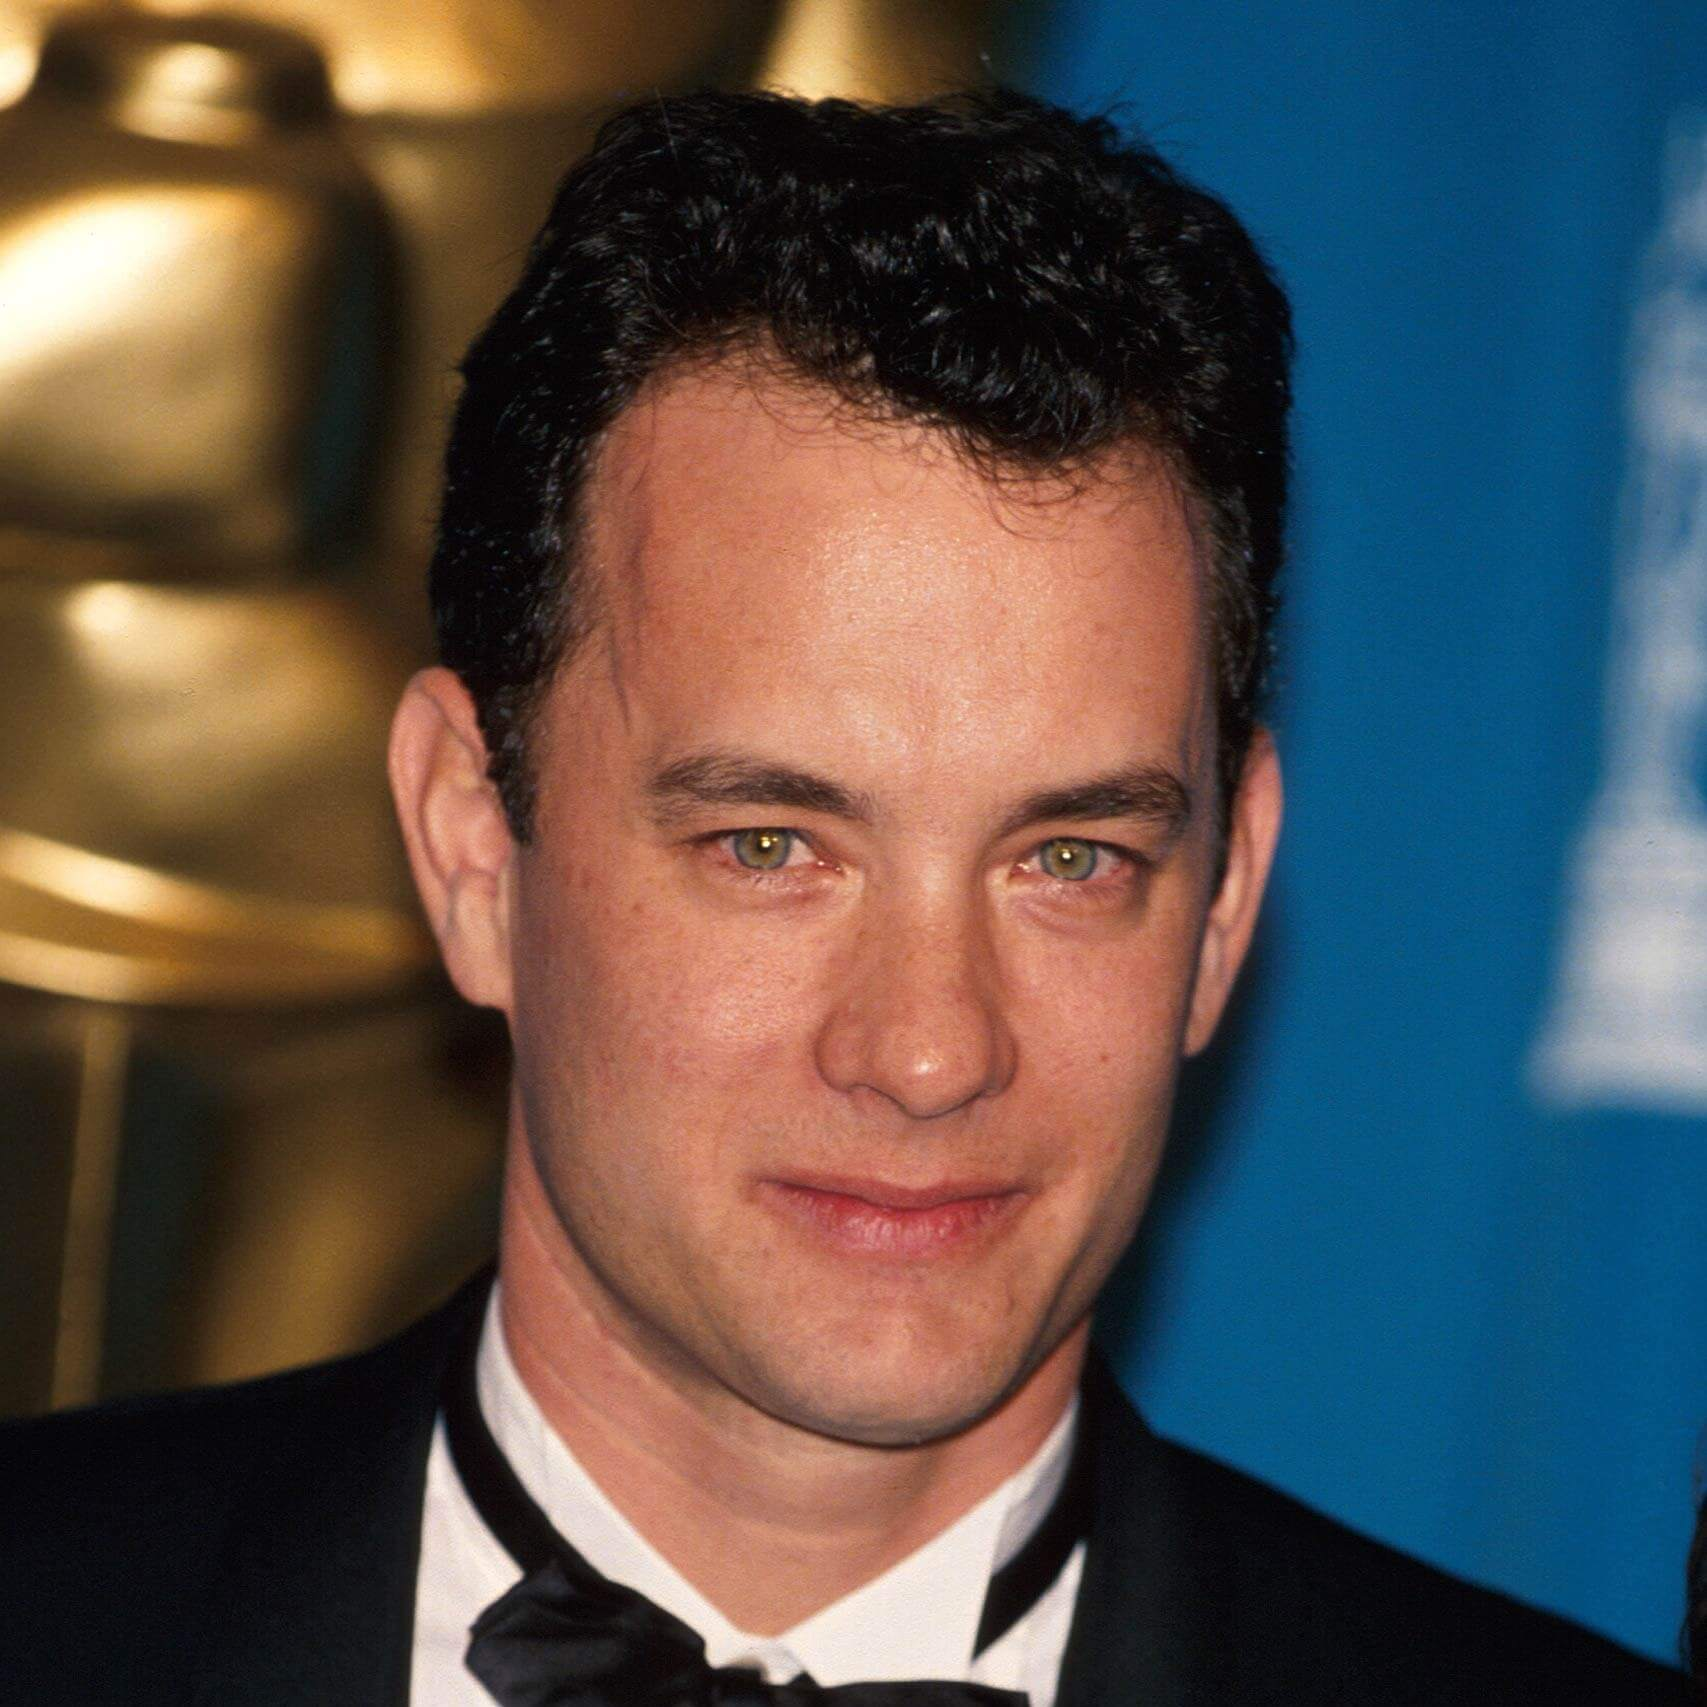 Tom Hanks in 1994